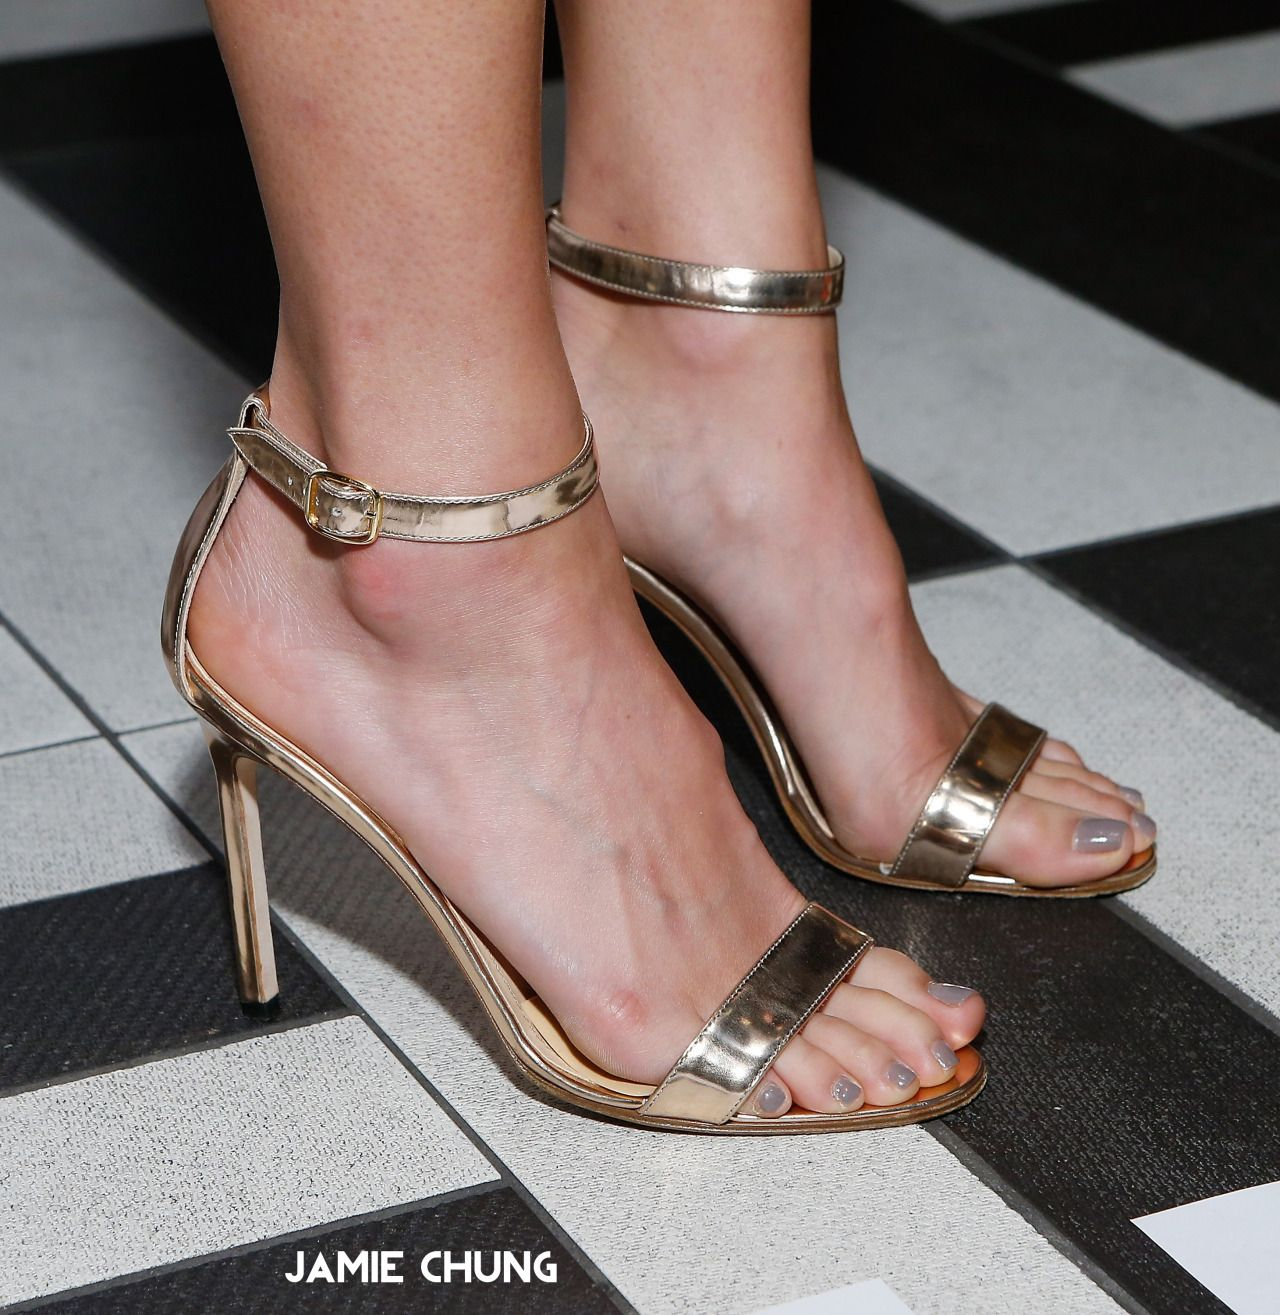 Top 10 Sexiest Celebrity Feet - YouTube